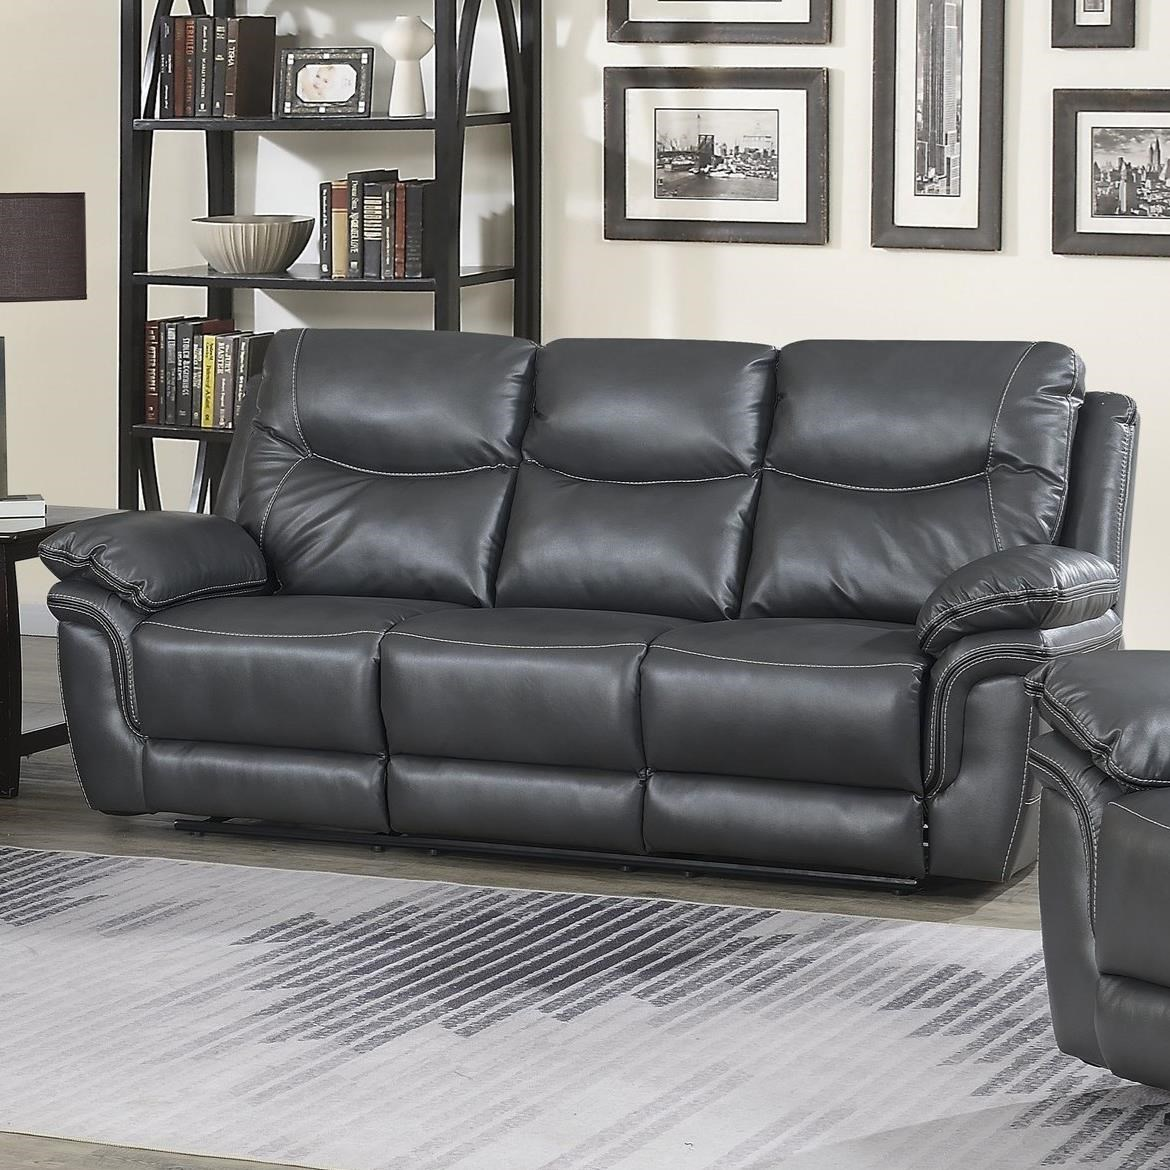 Isabella Recliner Sofa by Star at EFO Furniture Outlet